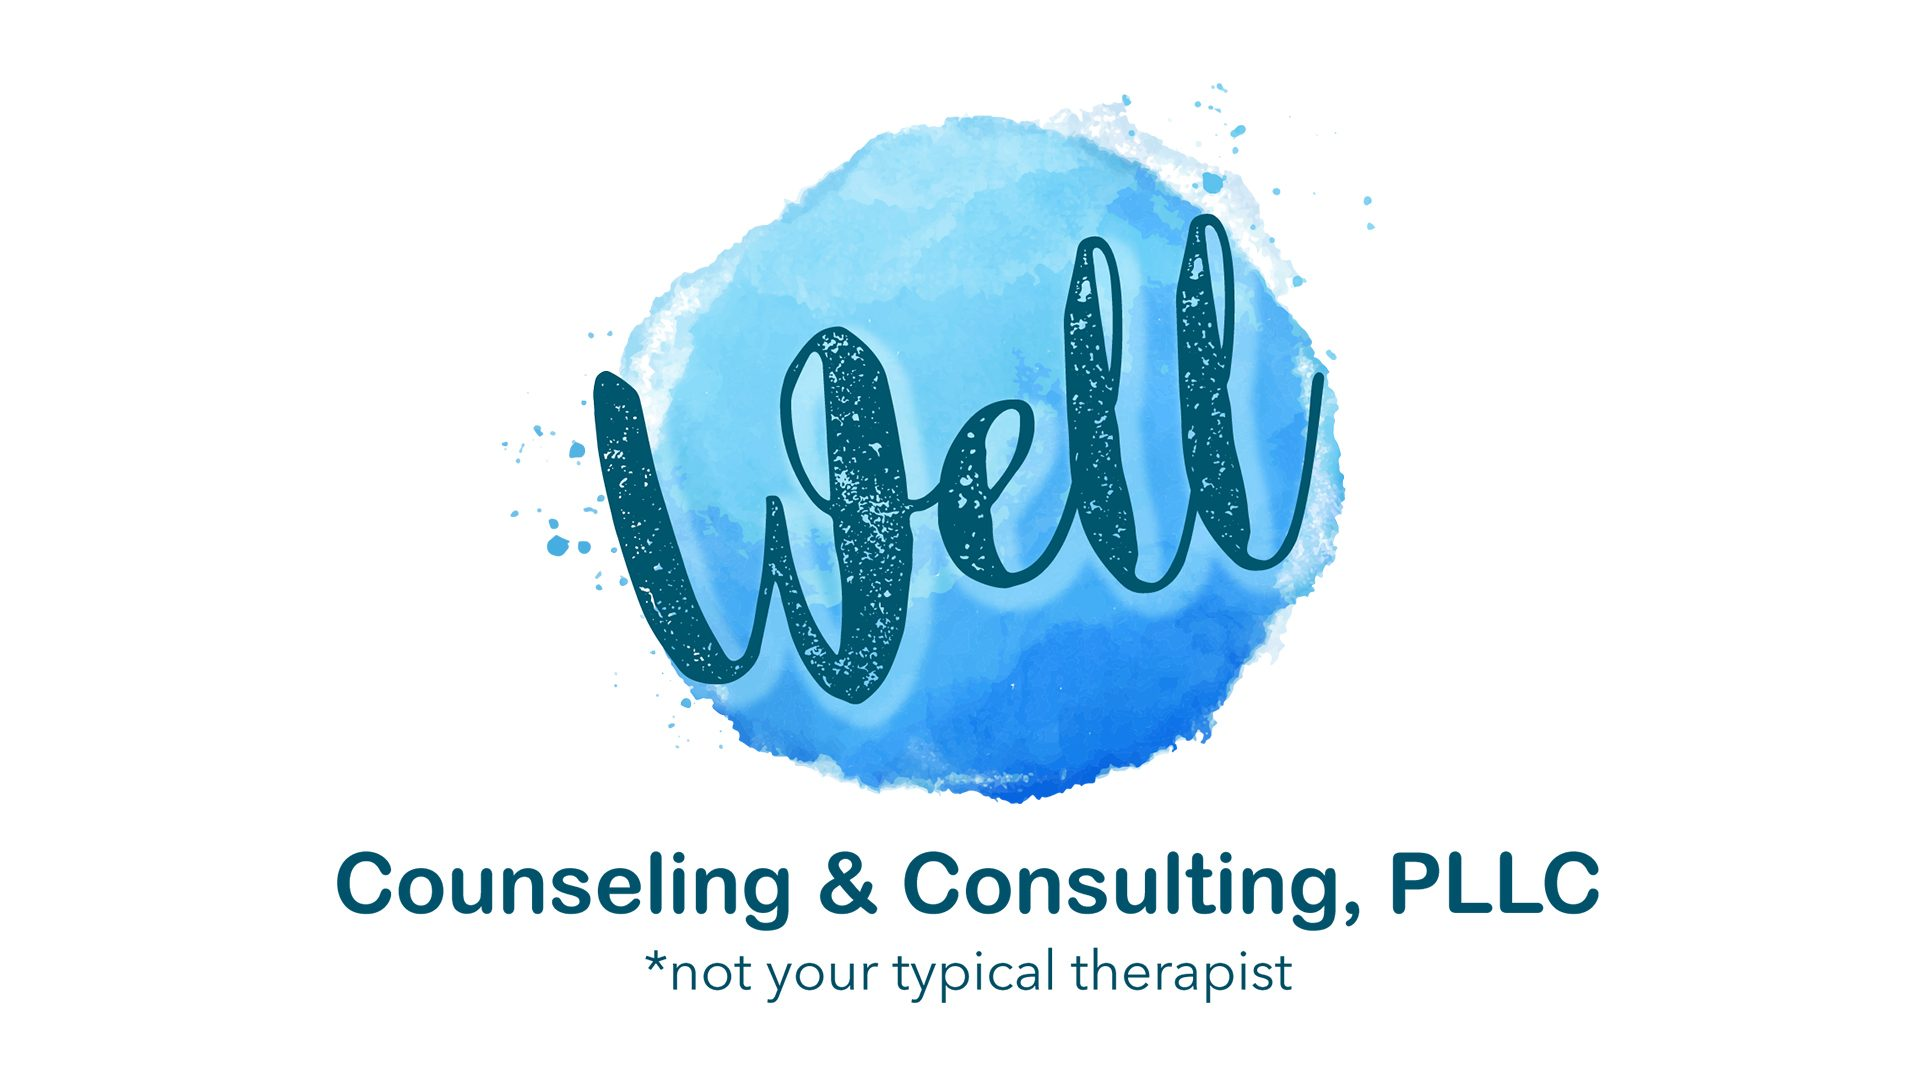 Well Counseling & Consulting PLLC